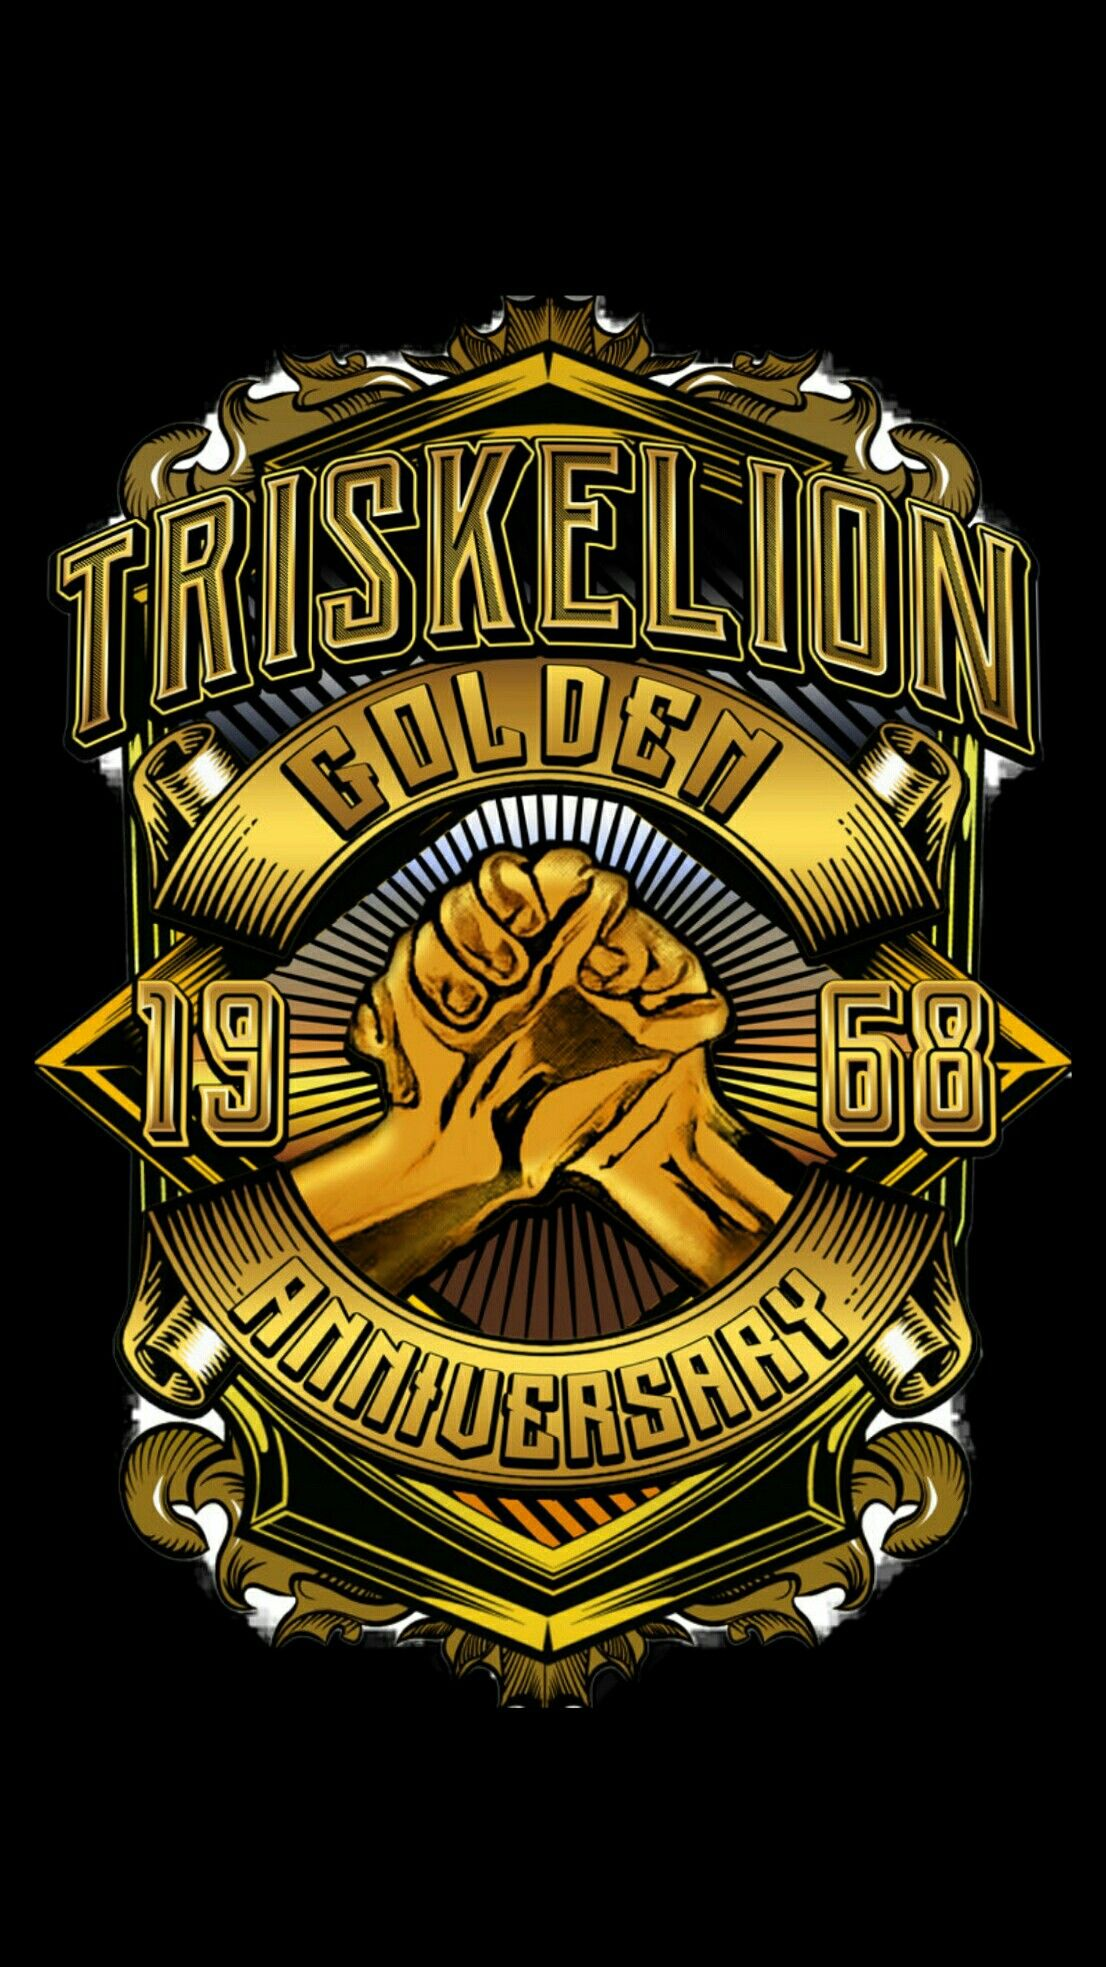 Triskelion Tau Gamma Wallpaper Gold 50 Android Iphone Deviant Art Tau Gamma Black Wallpaper Qhd Wallpaper